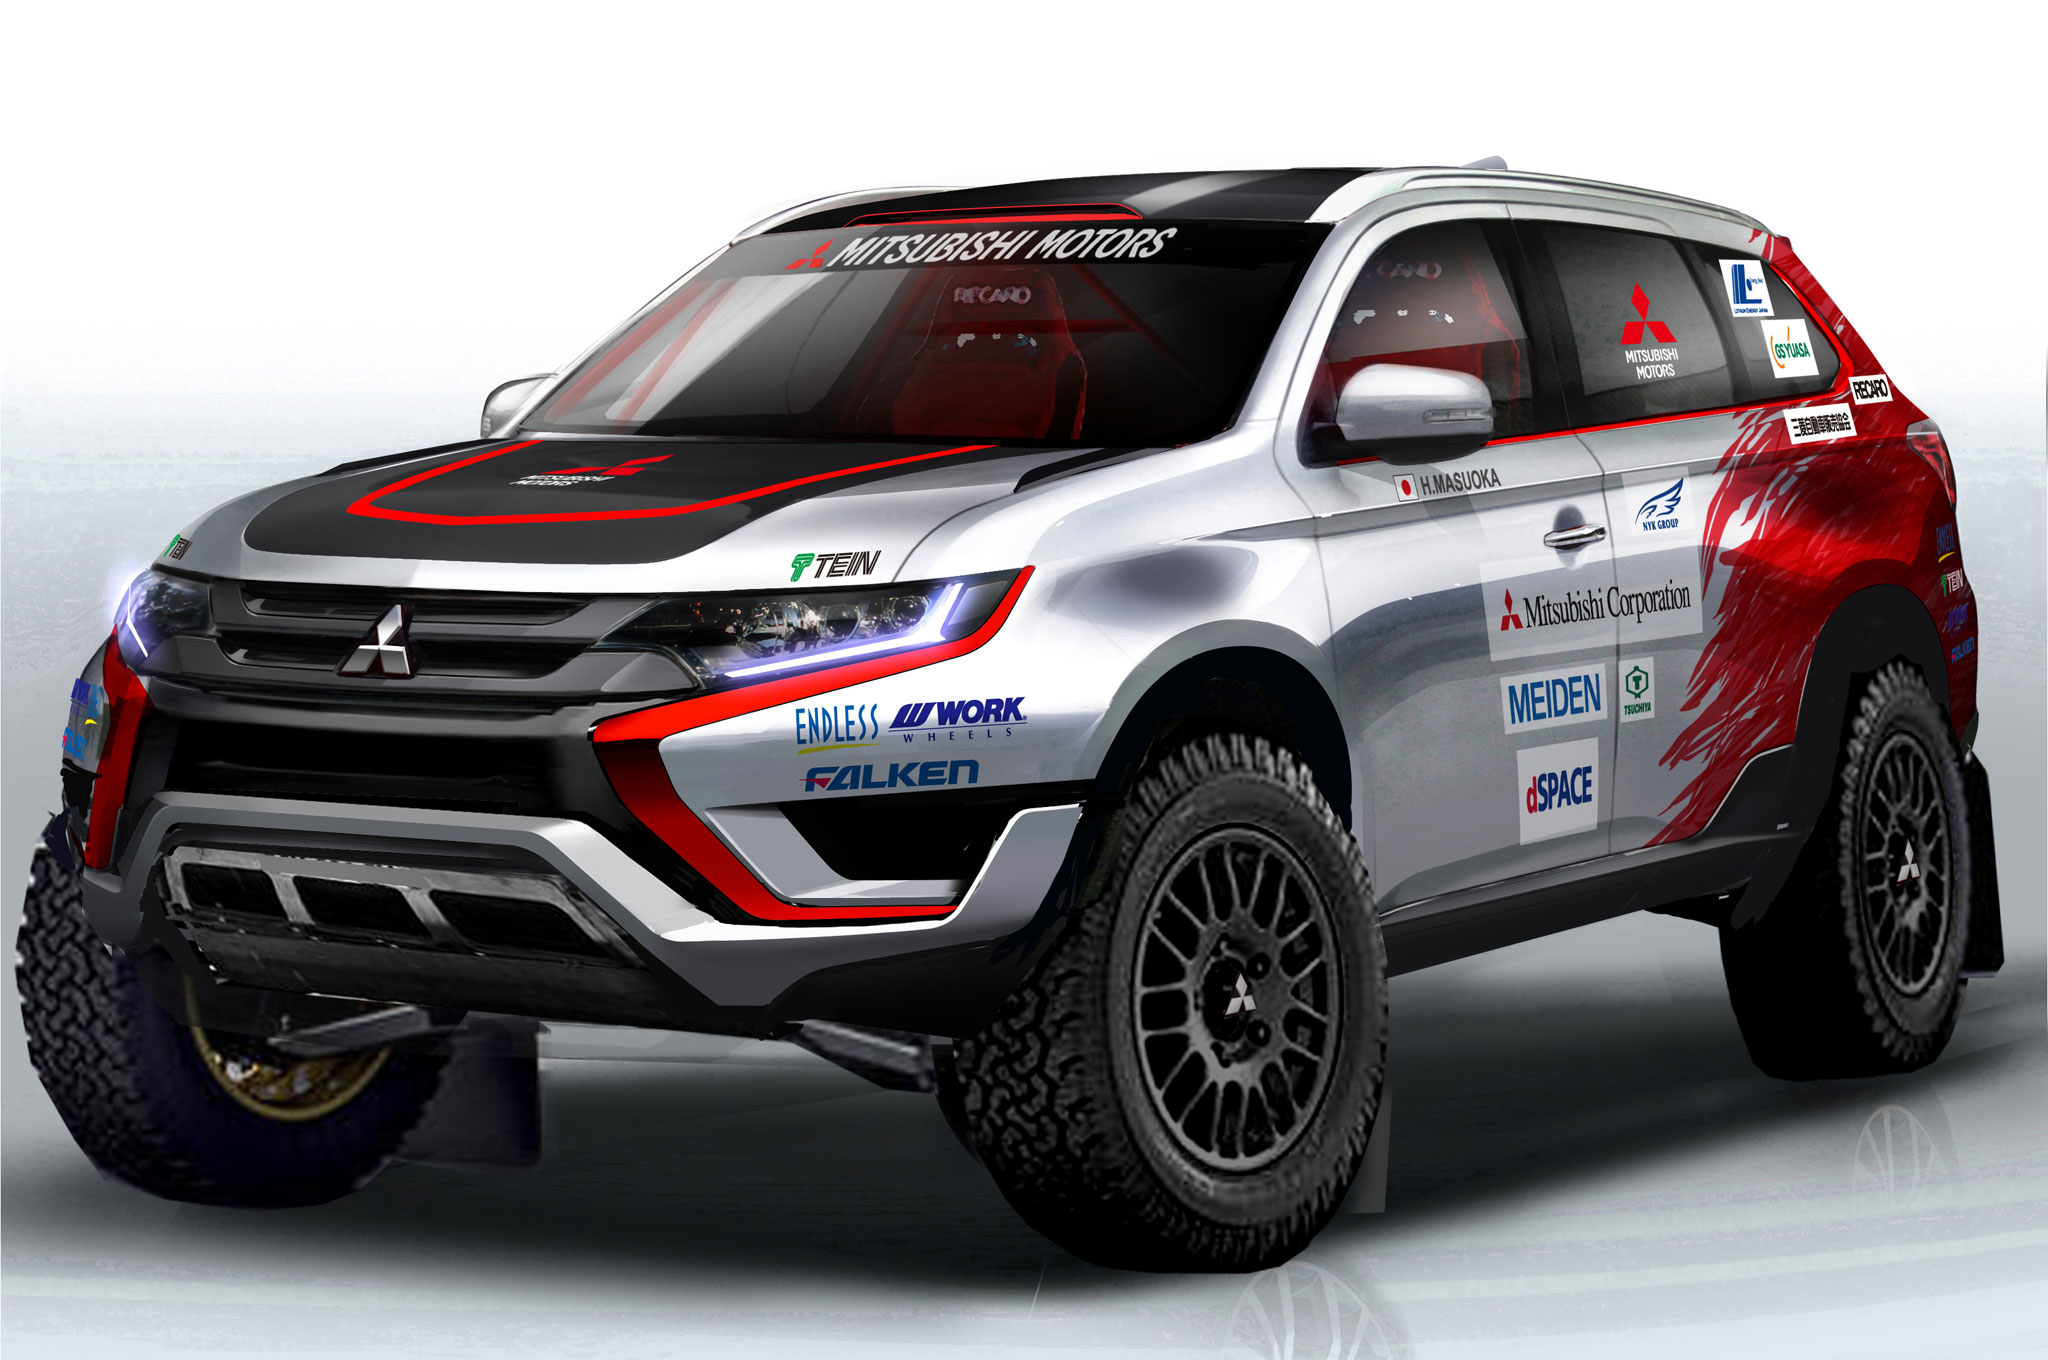 Mitsubishi Outlander PHEV to Contest Baja Portalegre 500 Rally